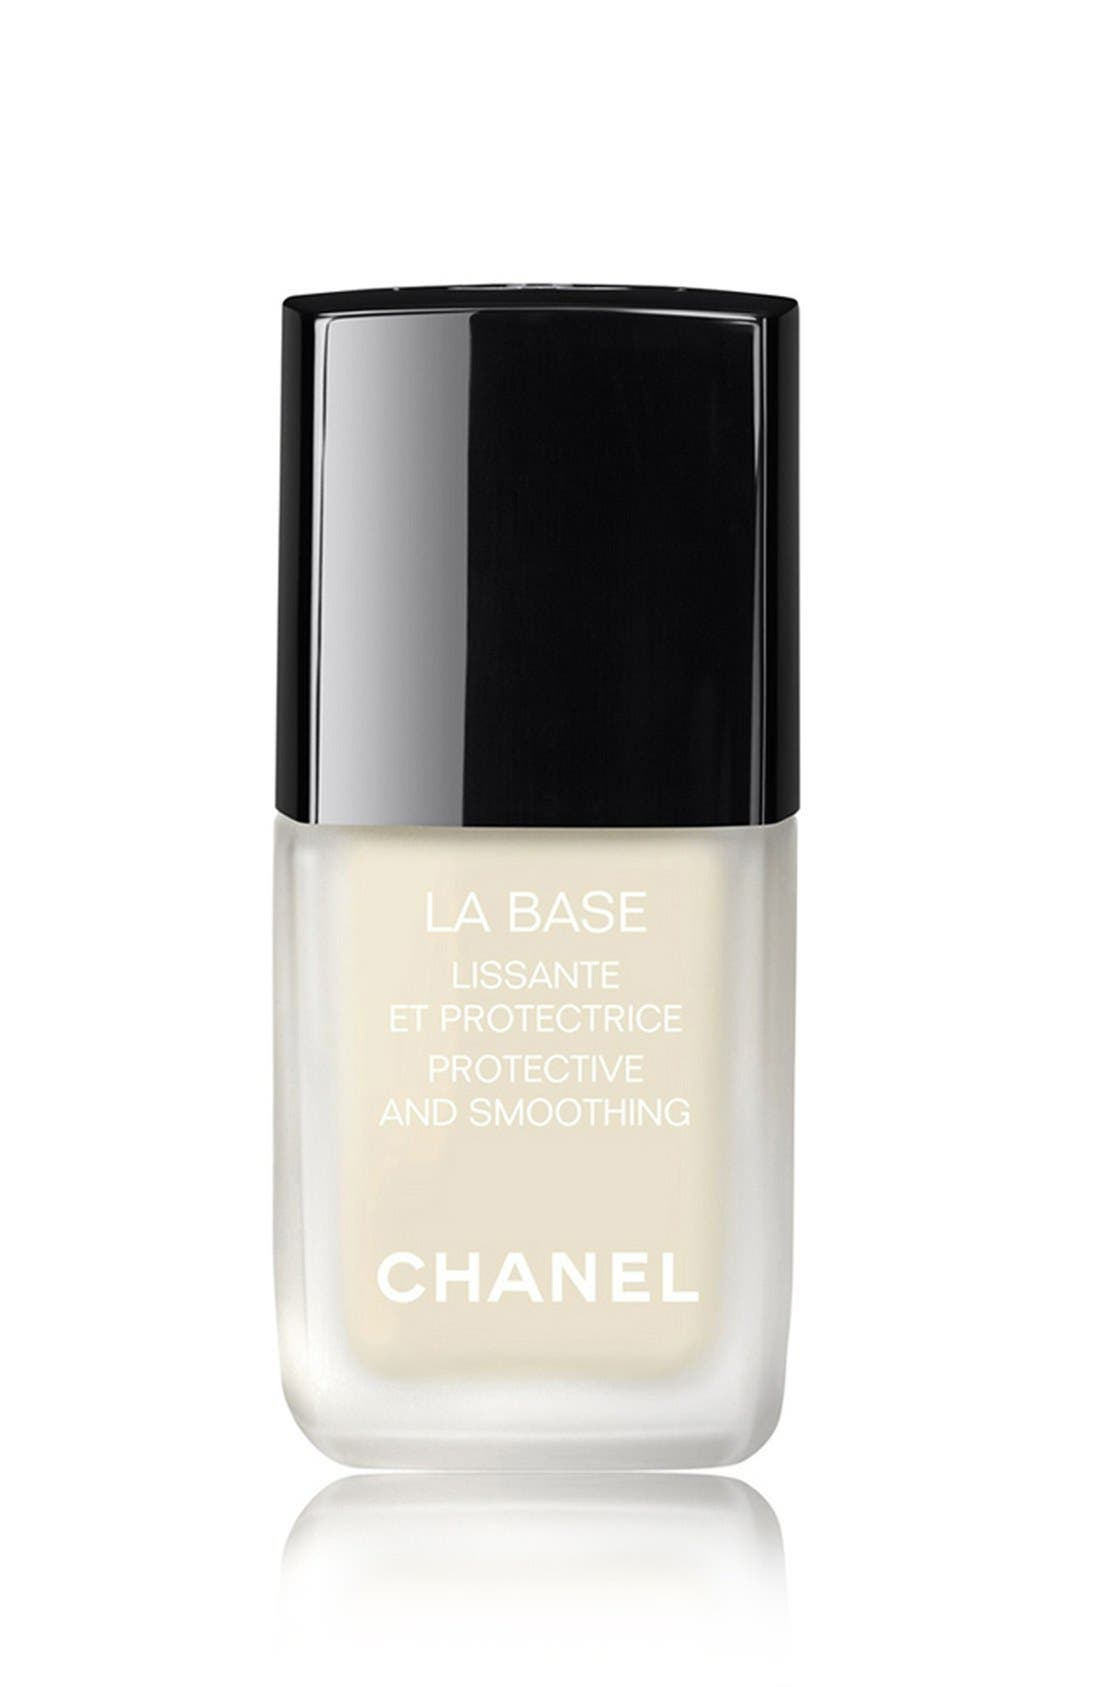 CHANEL LA BASE 